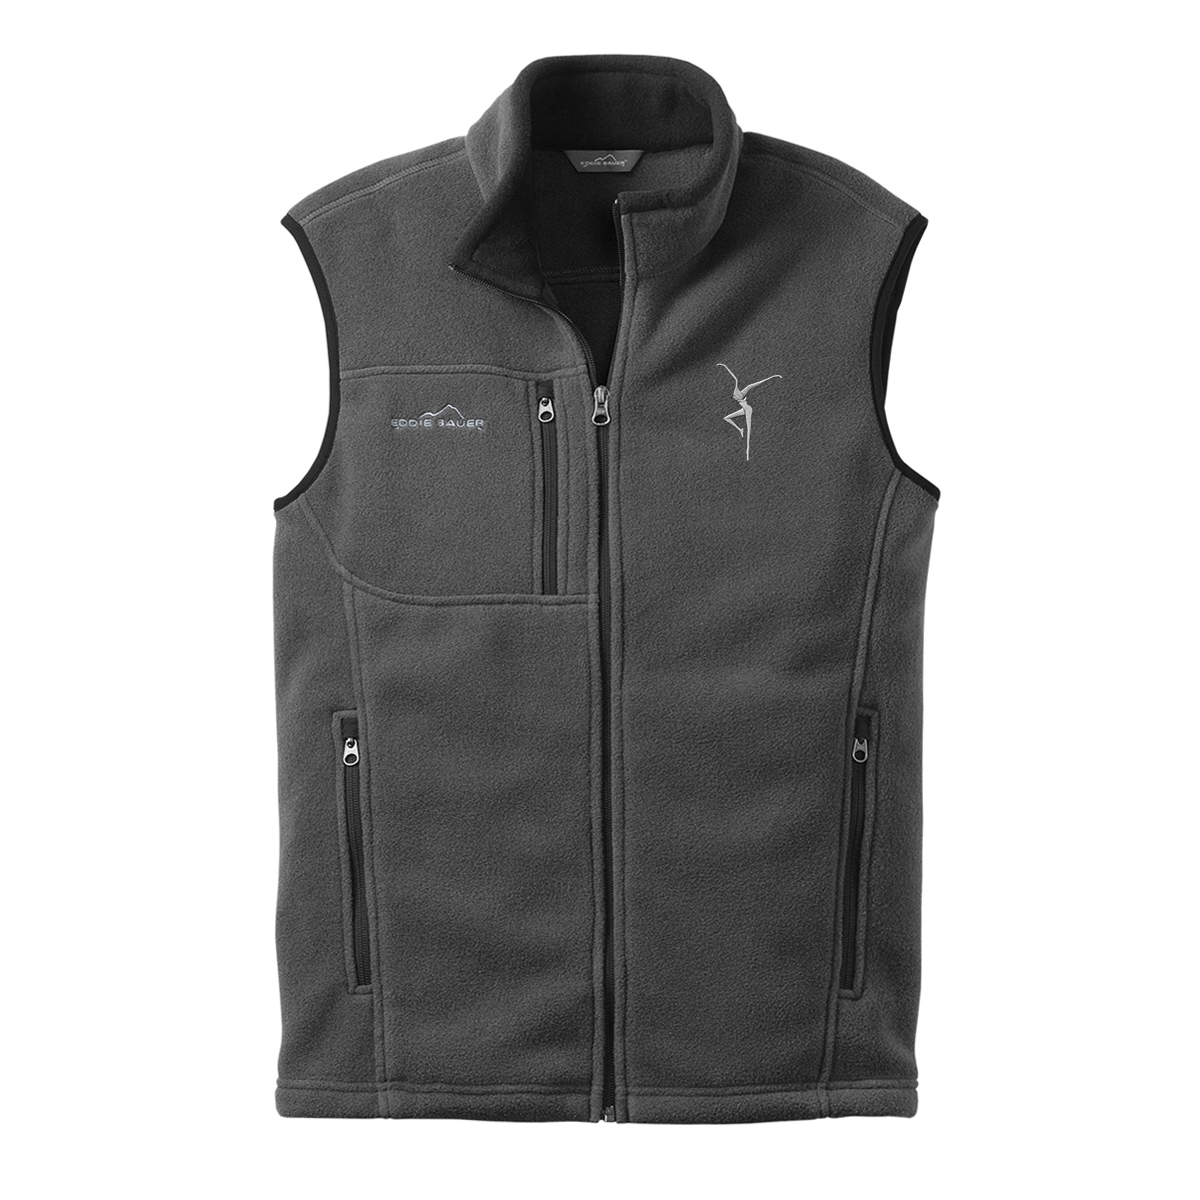 Firedancer Eddie Bauer Fleece Vest - Grey